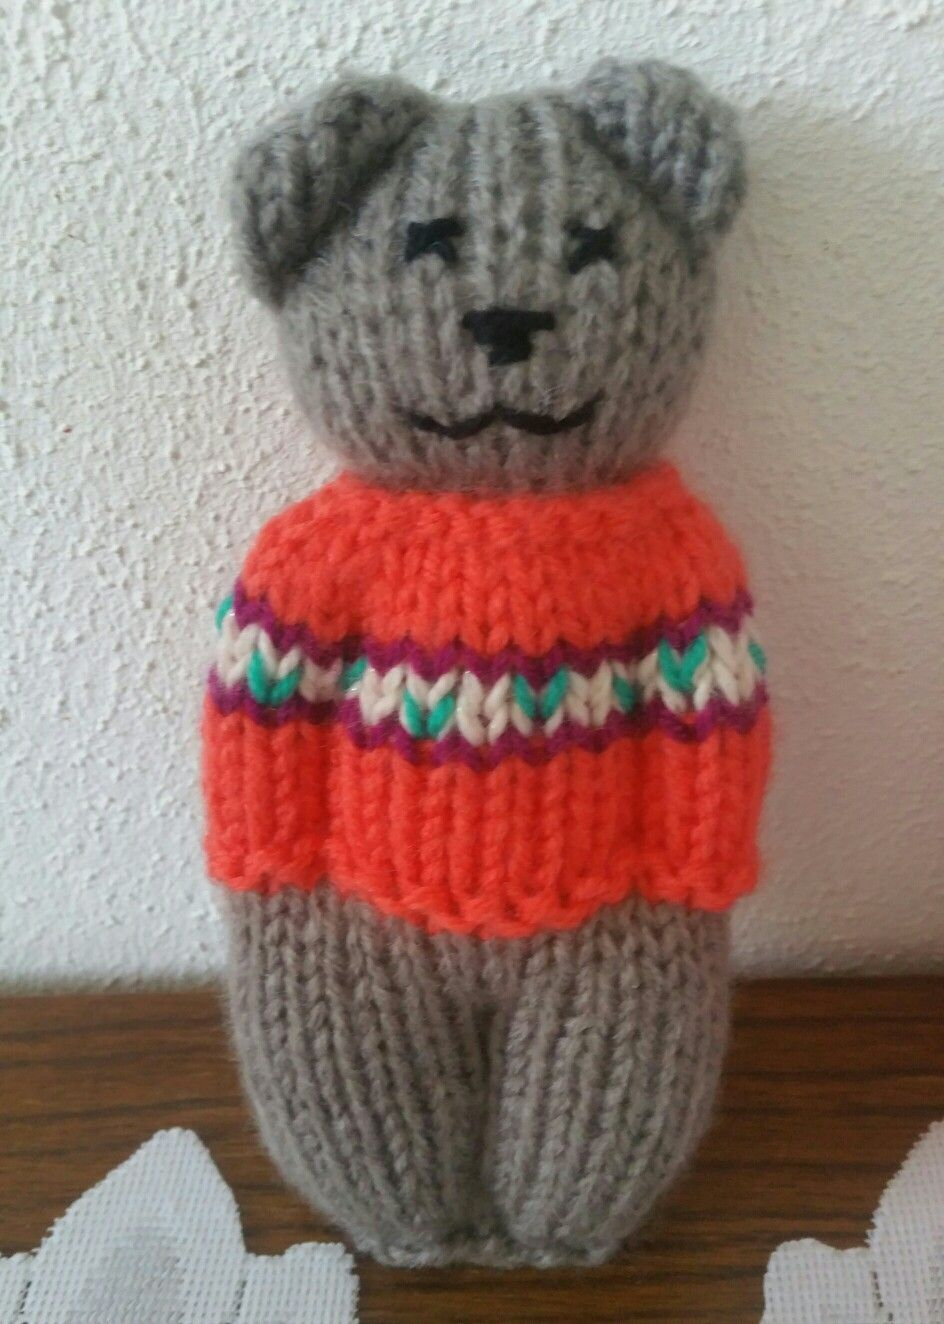 Cute lil knitted teddy bear in a sweater. #teddybear